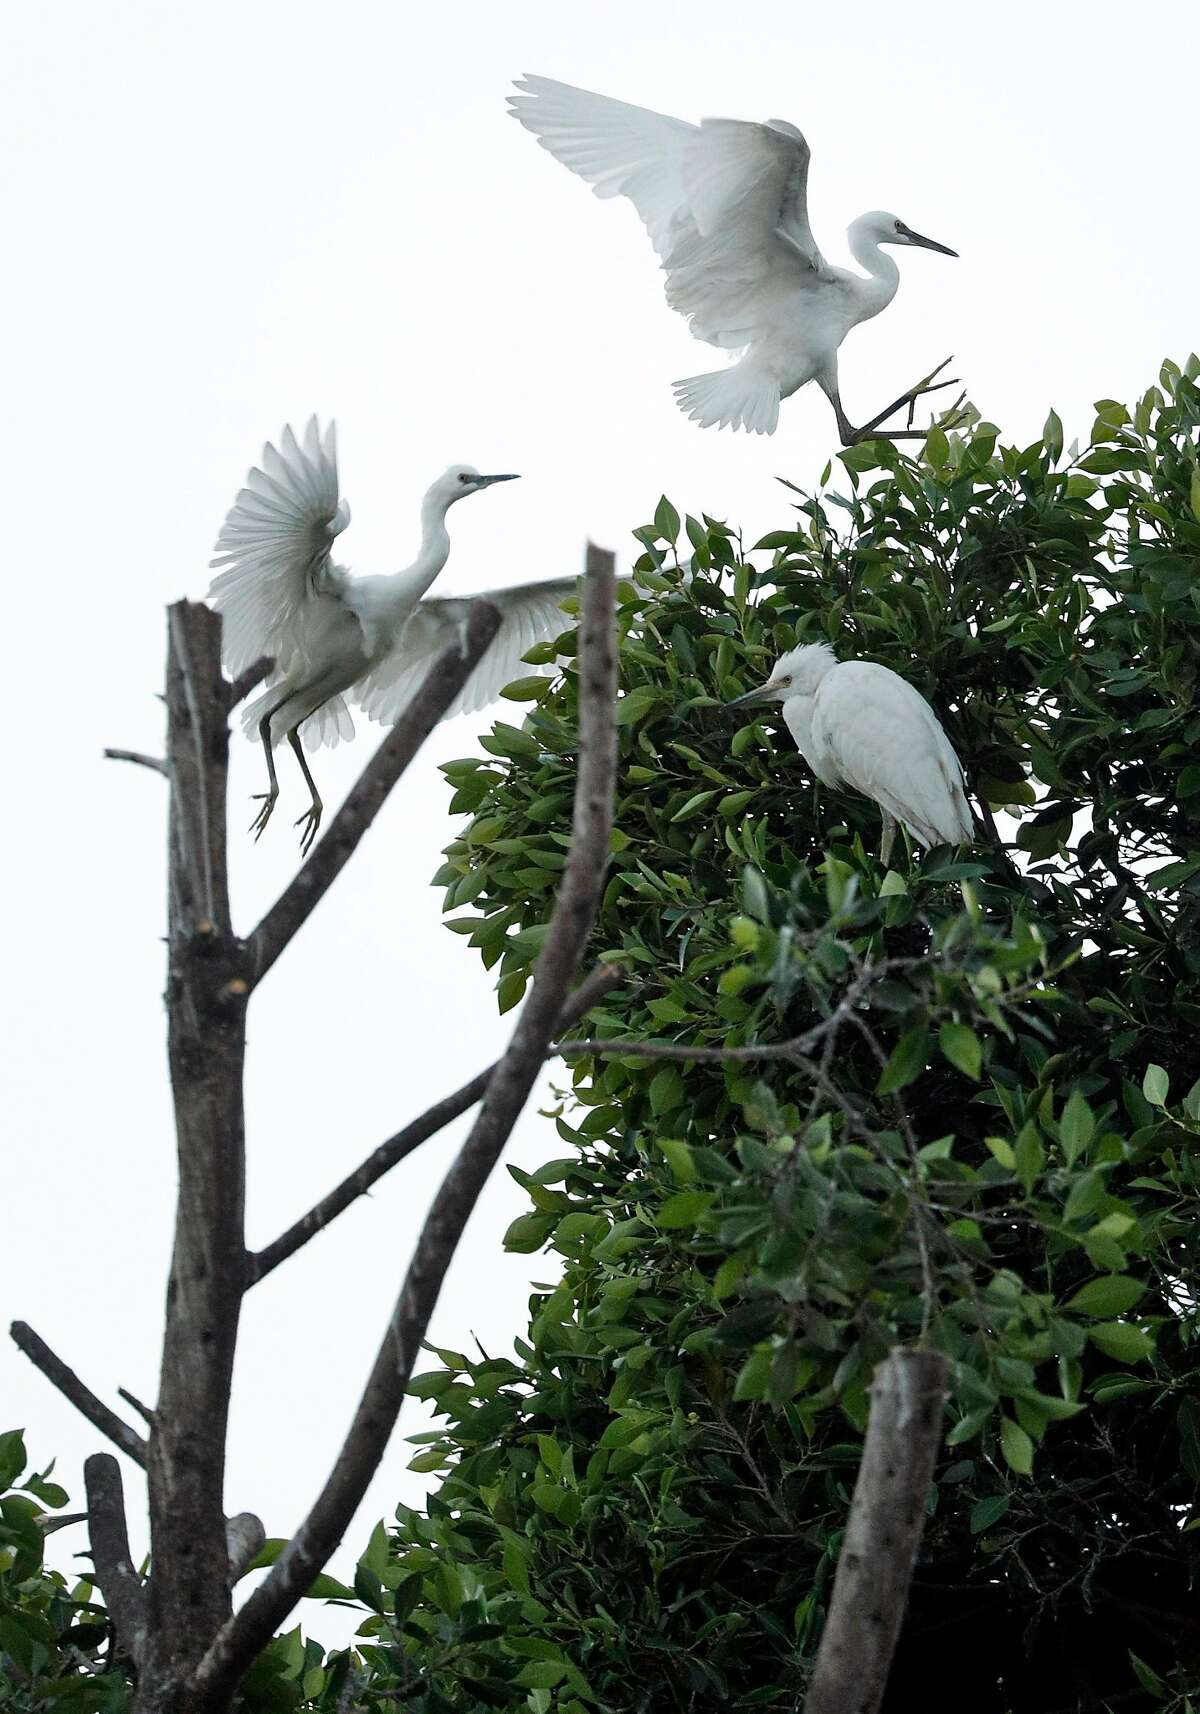 Several nesting birds position themselves on what remains of their nesting tree at the post office in Oakland Calif., on Thursday, July 11, 2019, the day after their nesting tree collapsed. A huge tree split and fell in front of the post office at 13th Street and Jackson Street that was full of nests of night herons and egrets. So far, they've rescued 40 birds/eggs. 20 died. And more keep hopping up higher into remaining tree.